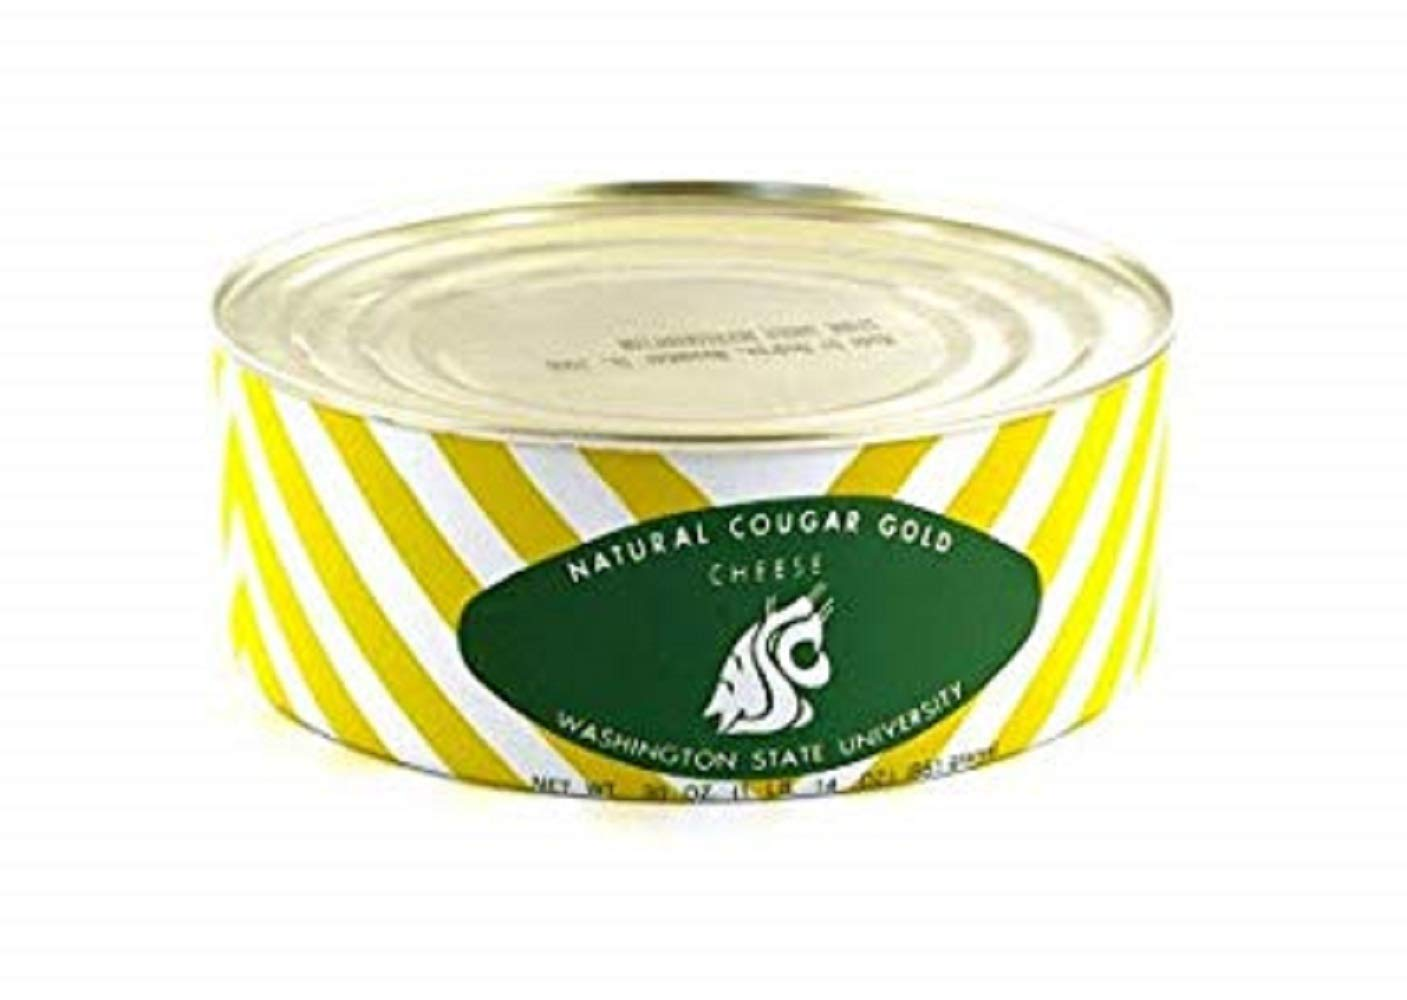 WSU Creamery Wazzu Cougar Gold Sharp White Cheddar Cheese (30oz Can) (1-Can Pack) by Washington State University (Image #1)